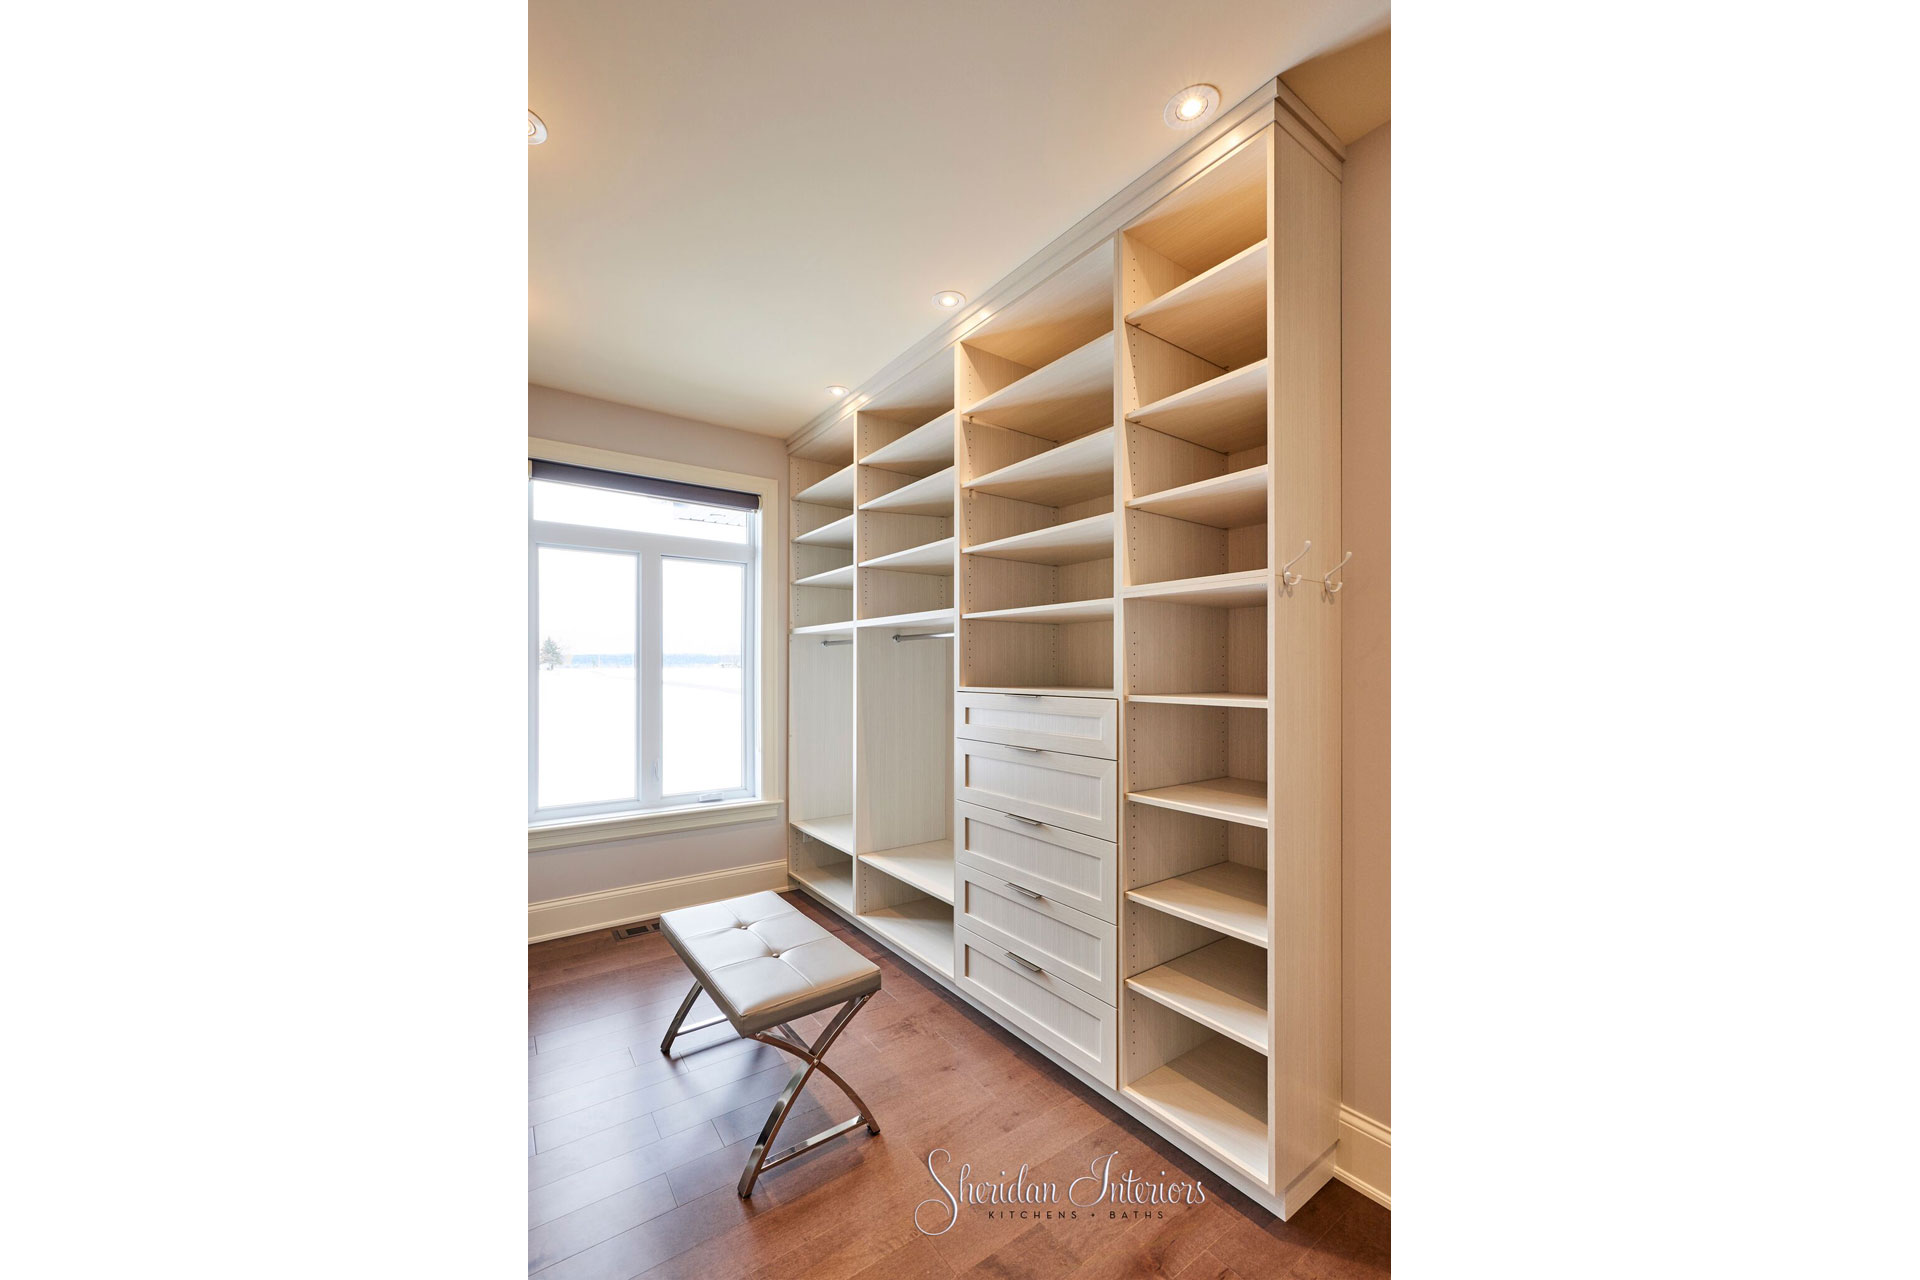 Walk-in Closet - Sheridan Interiors